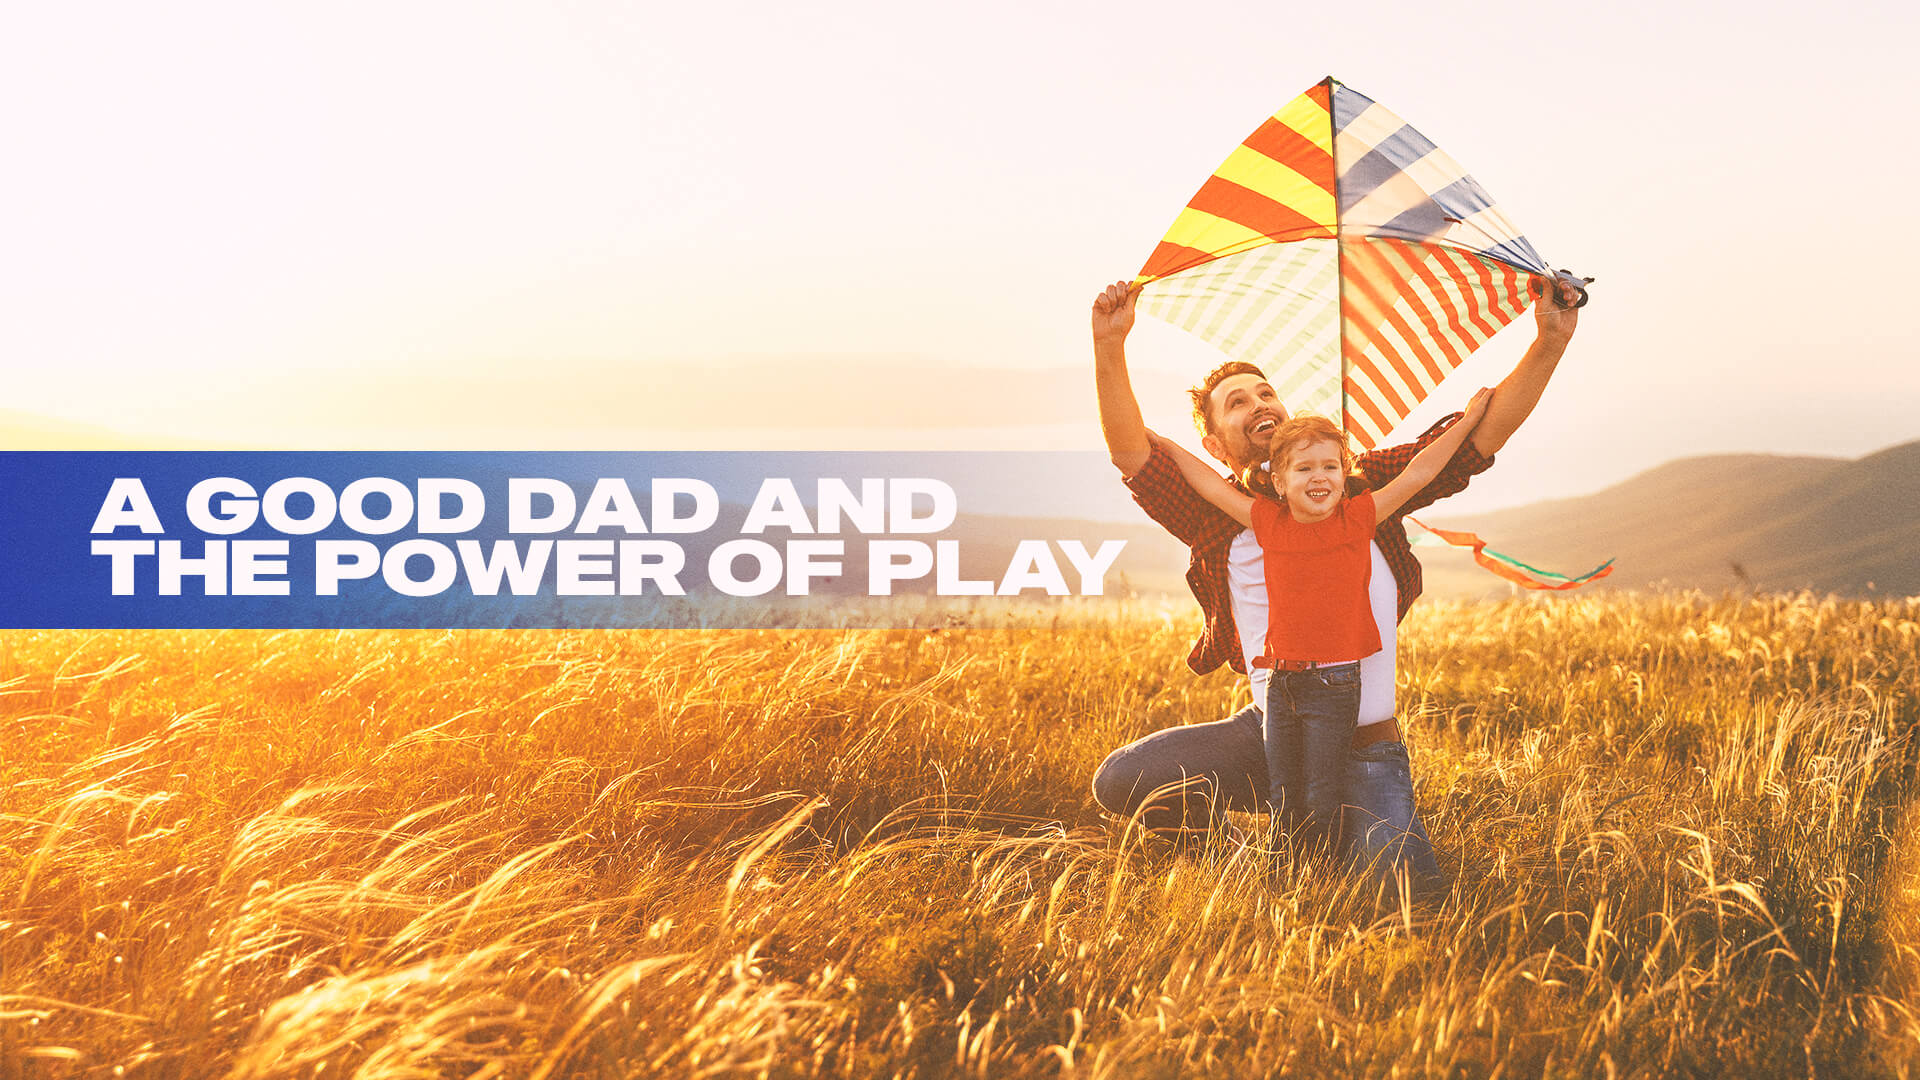 A GOOD DAD AND THE POWER OF PLAY